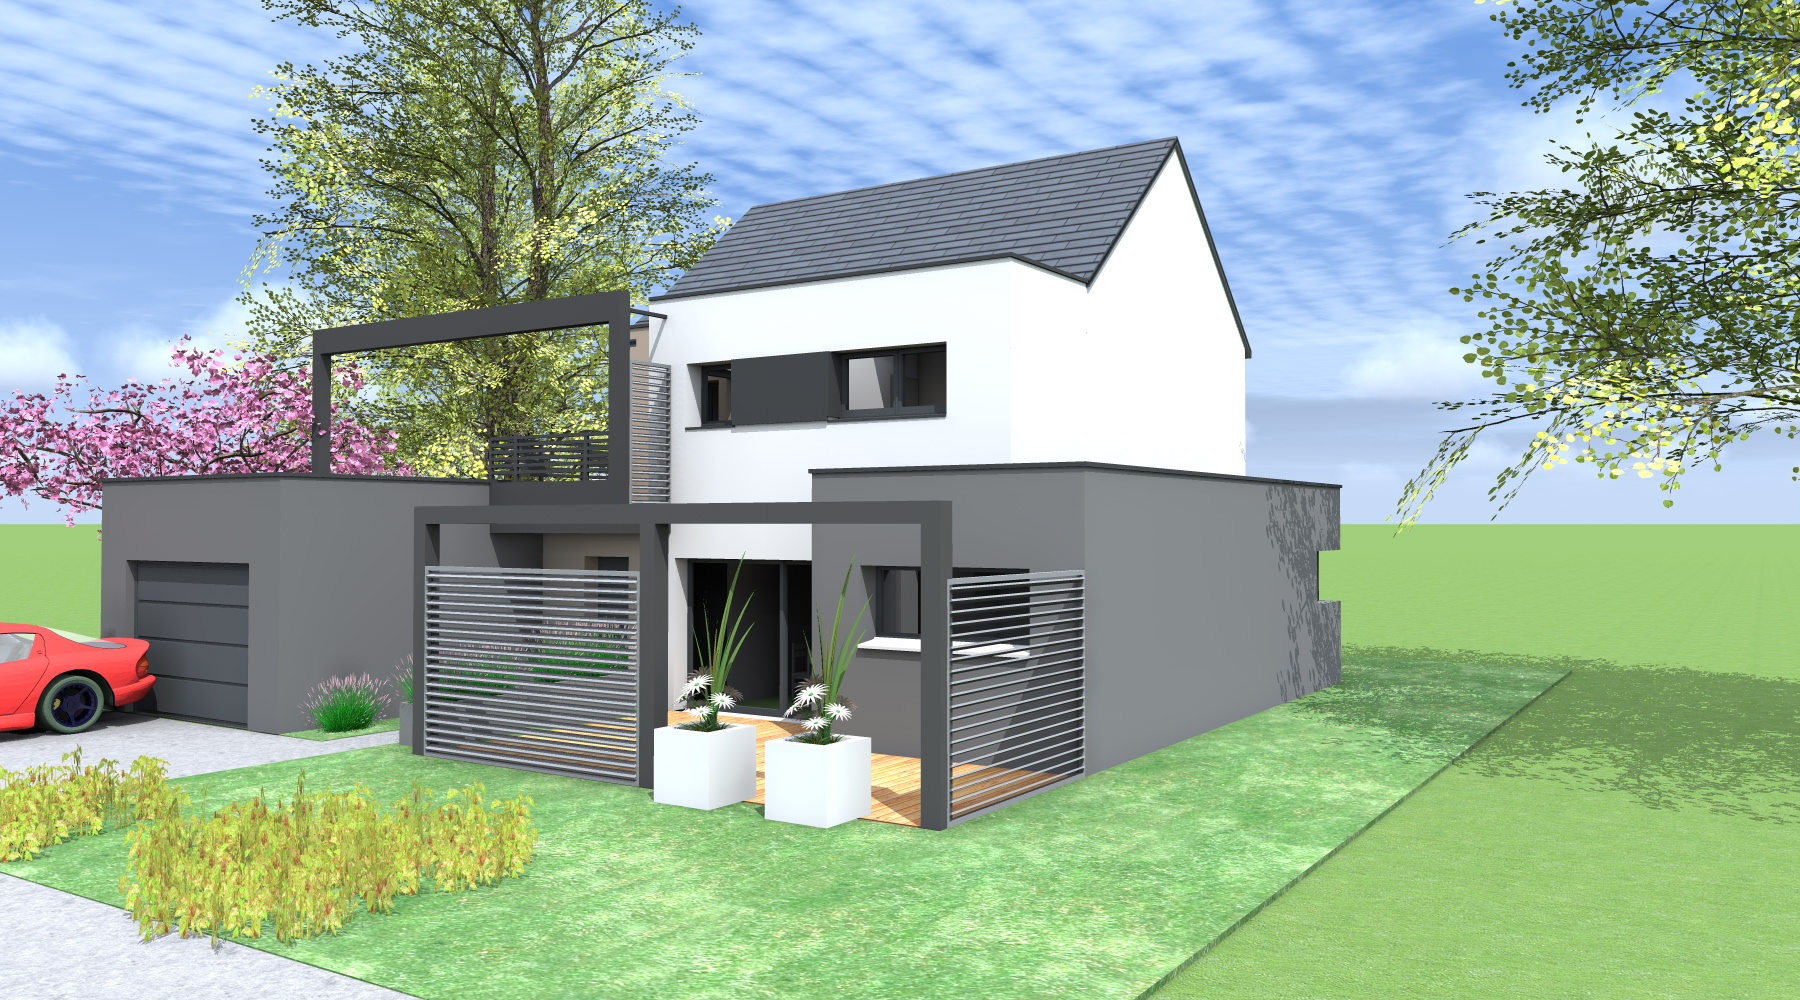 Maison d 39 architecte contemporaine st gr goire 35 for Projets de maisons libres